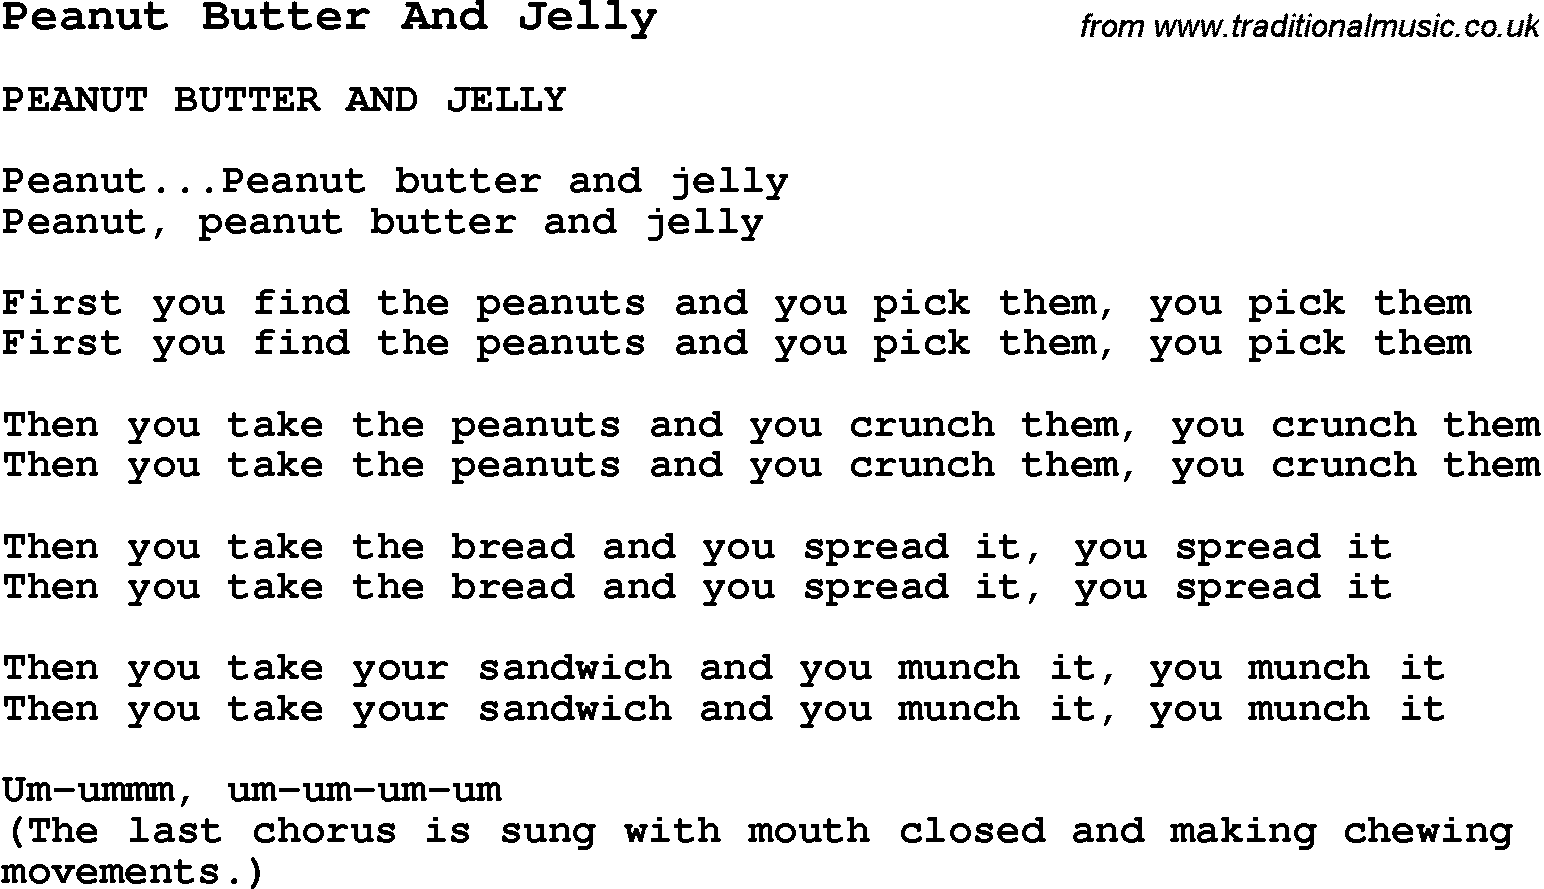 Summer Camp Song, Peanut Butter And Jelly, with lyrics and